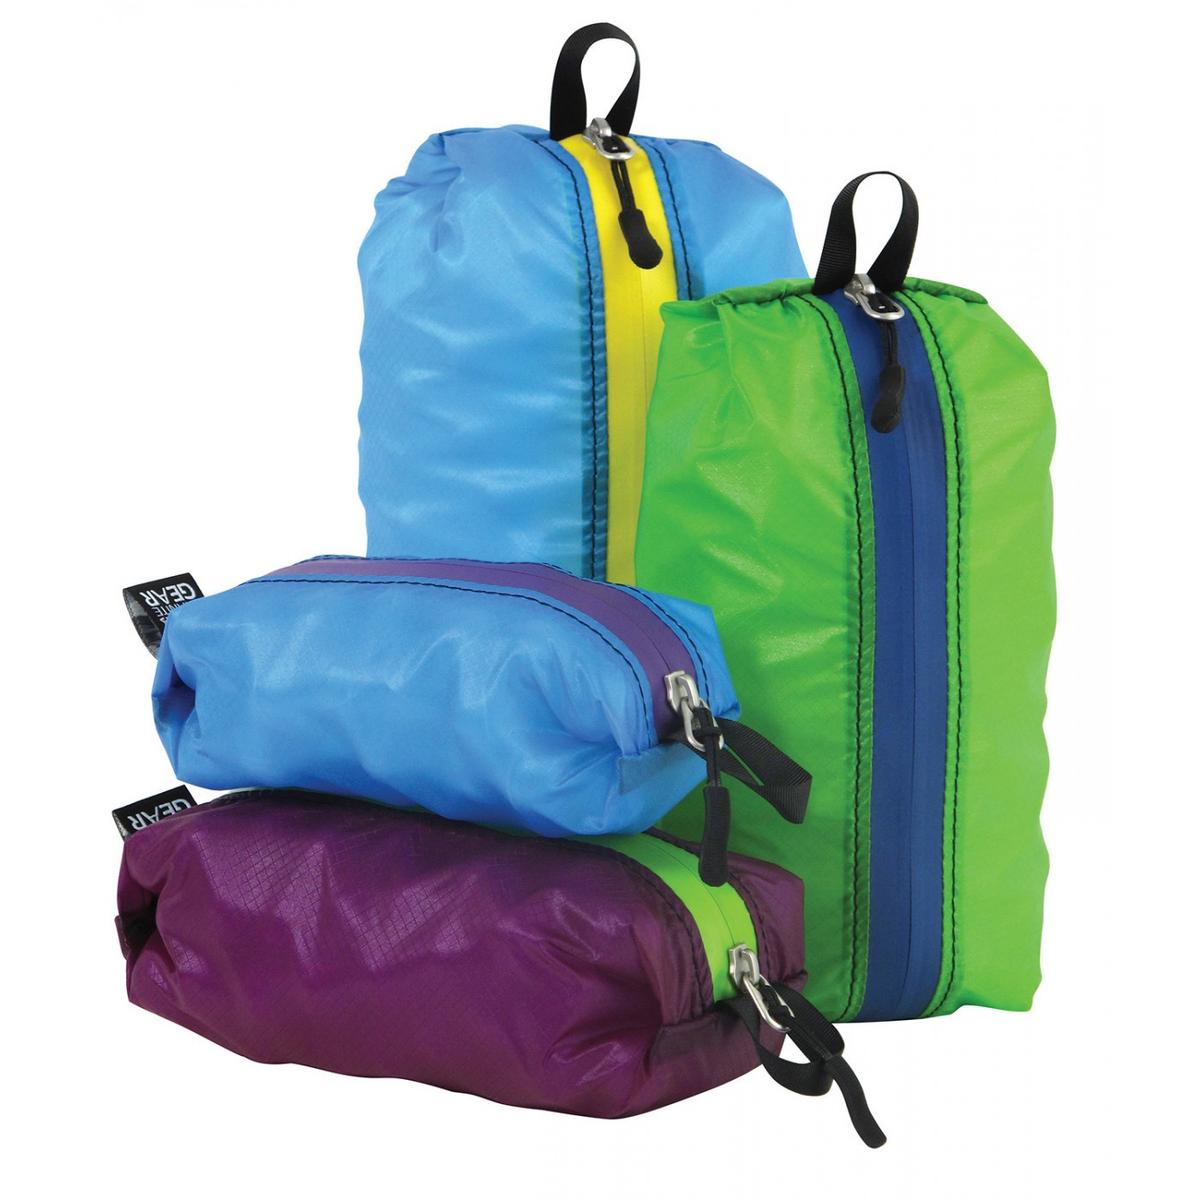 Granite Gear Air ZippDitty Zipper Bag